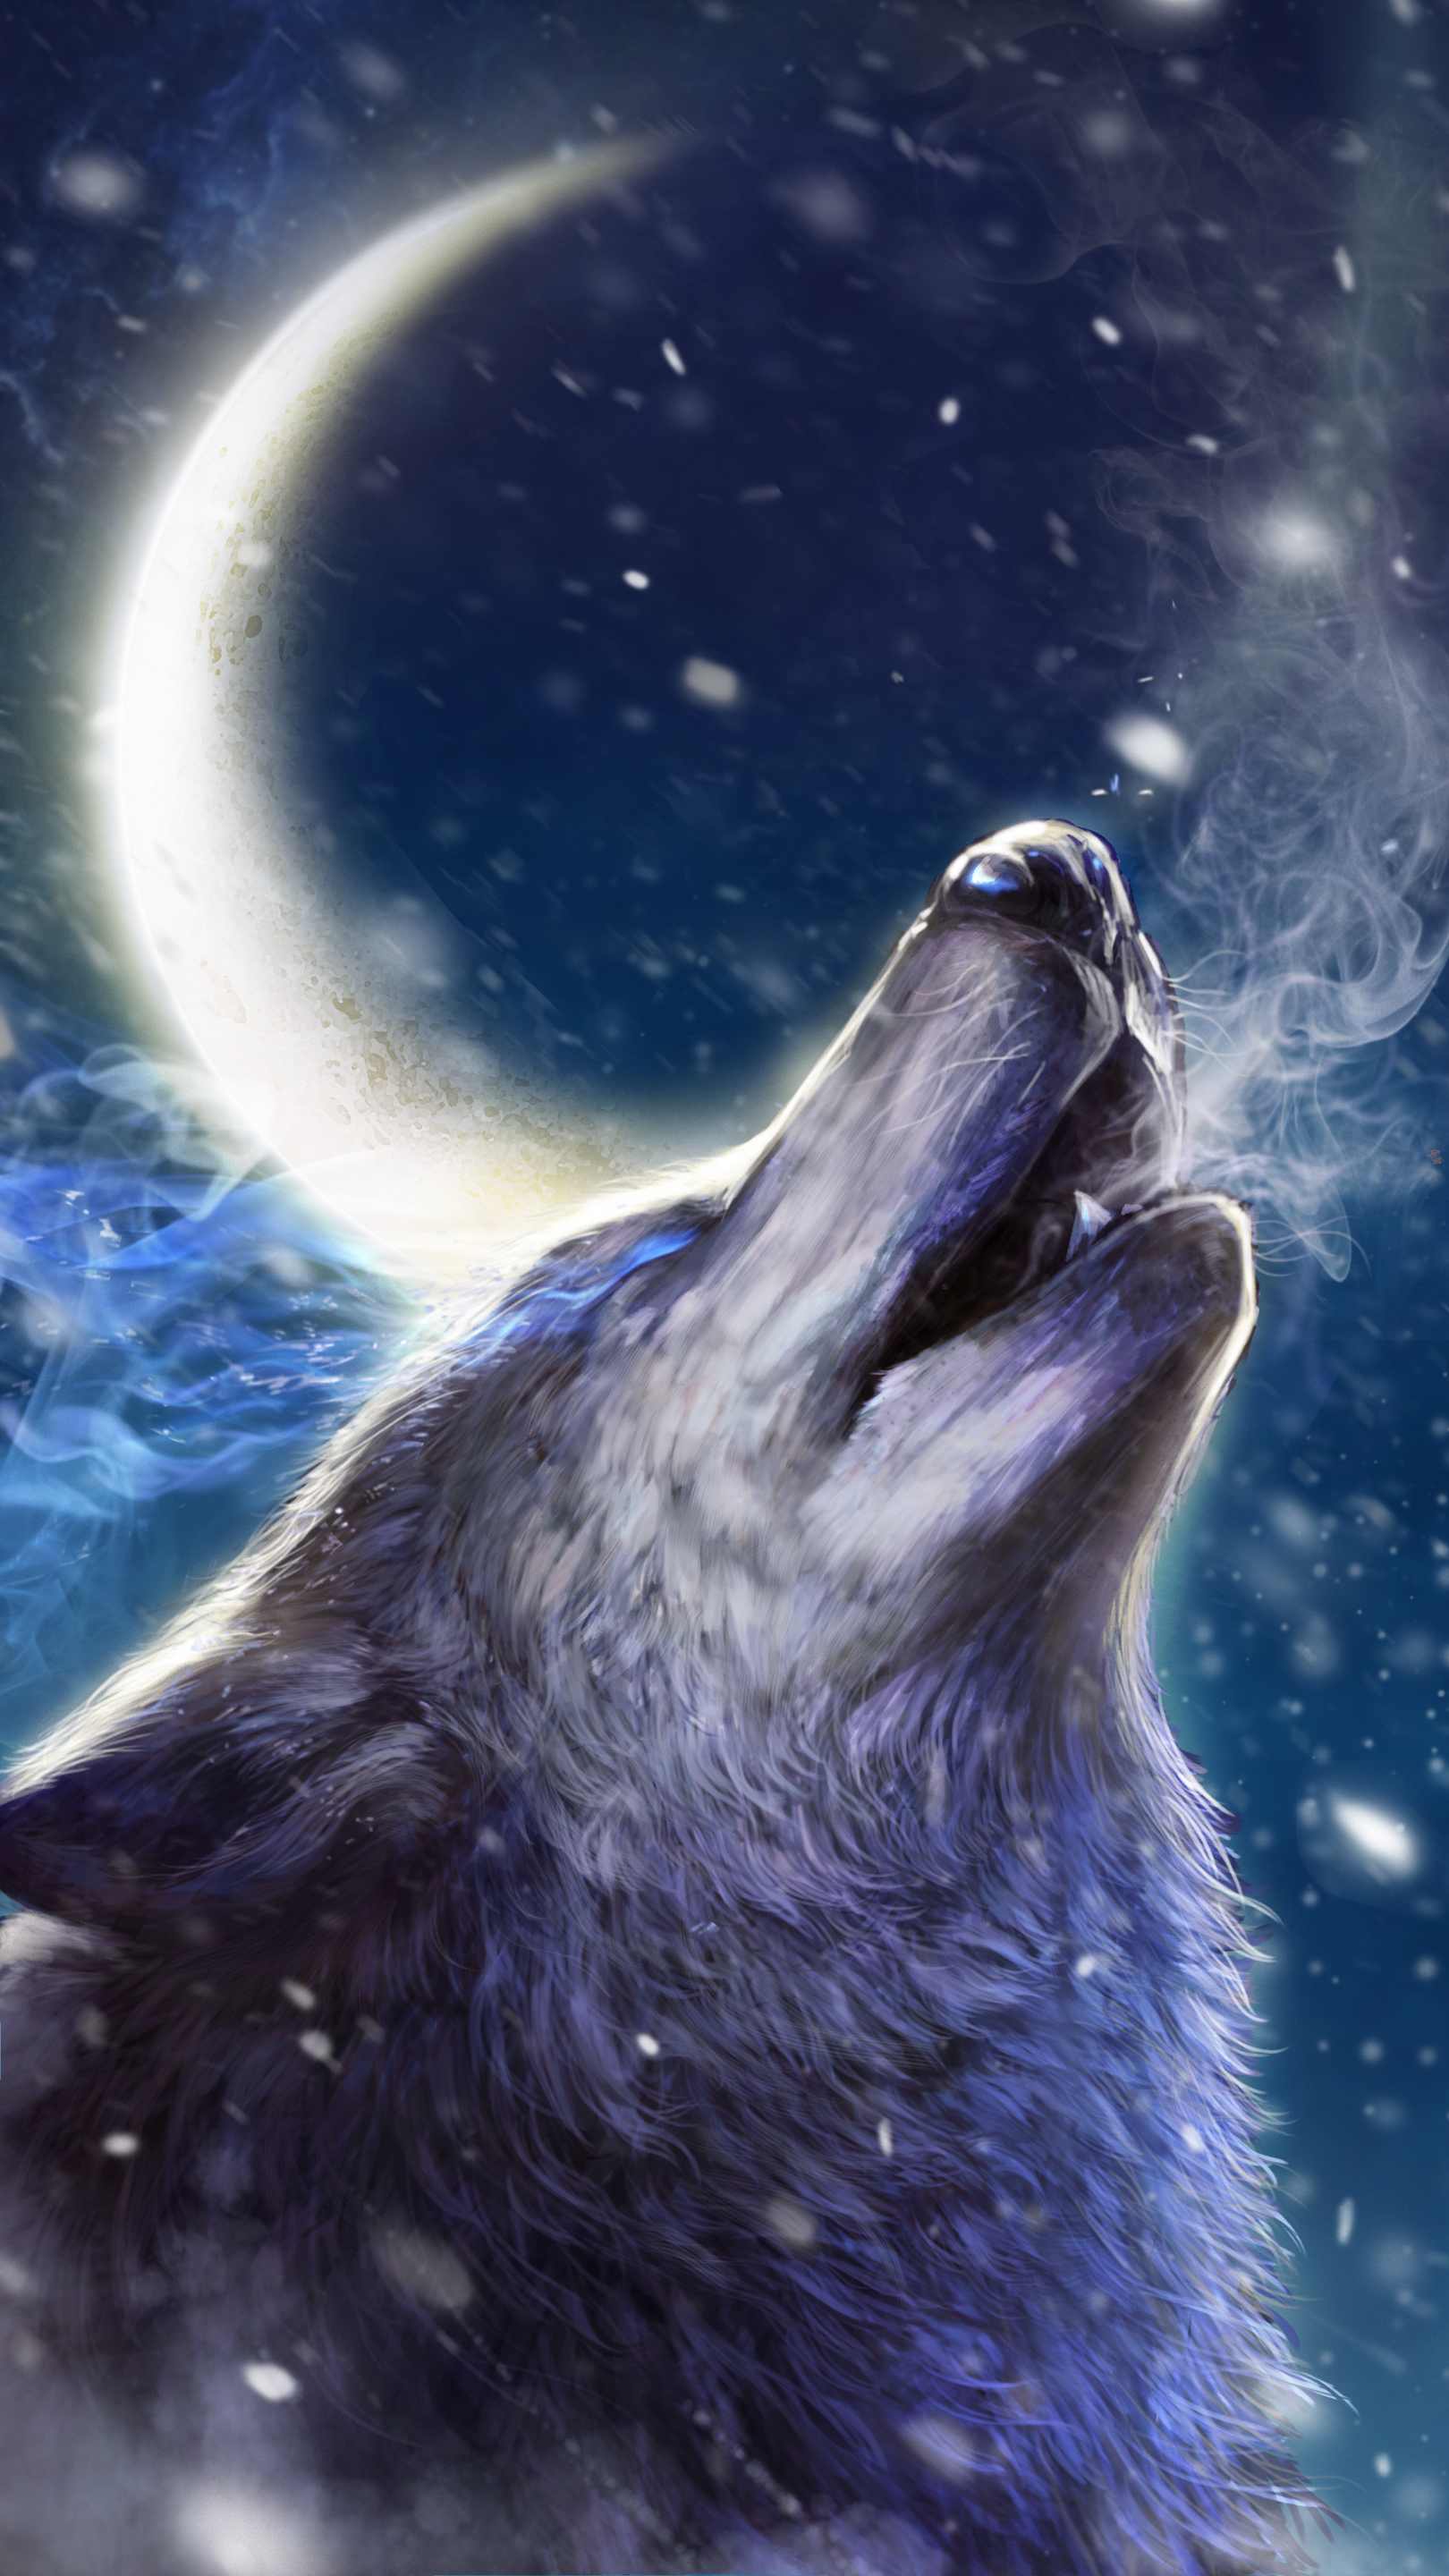 Howling wolf live wallpaper Android live wallpapers from 1620x2880